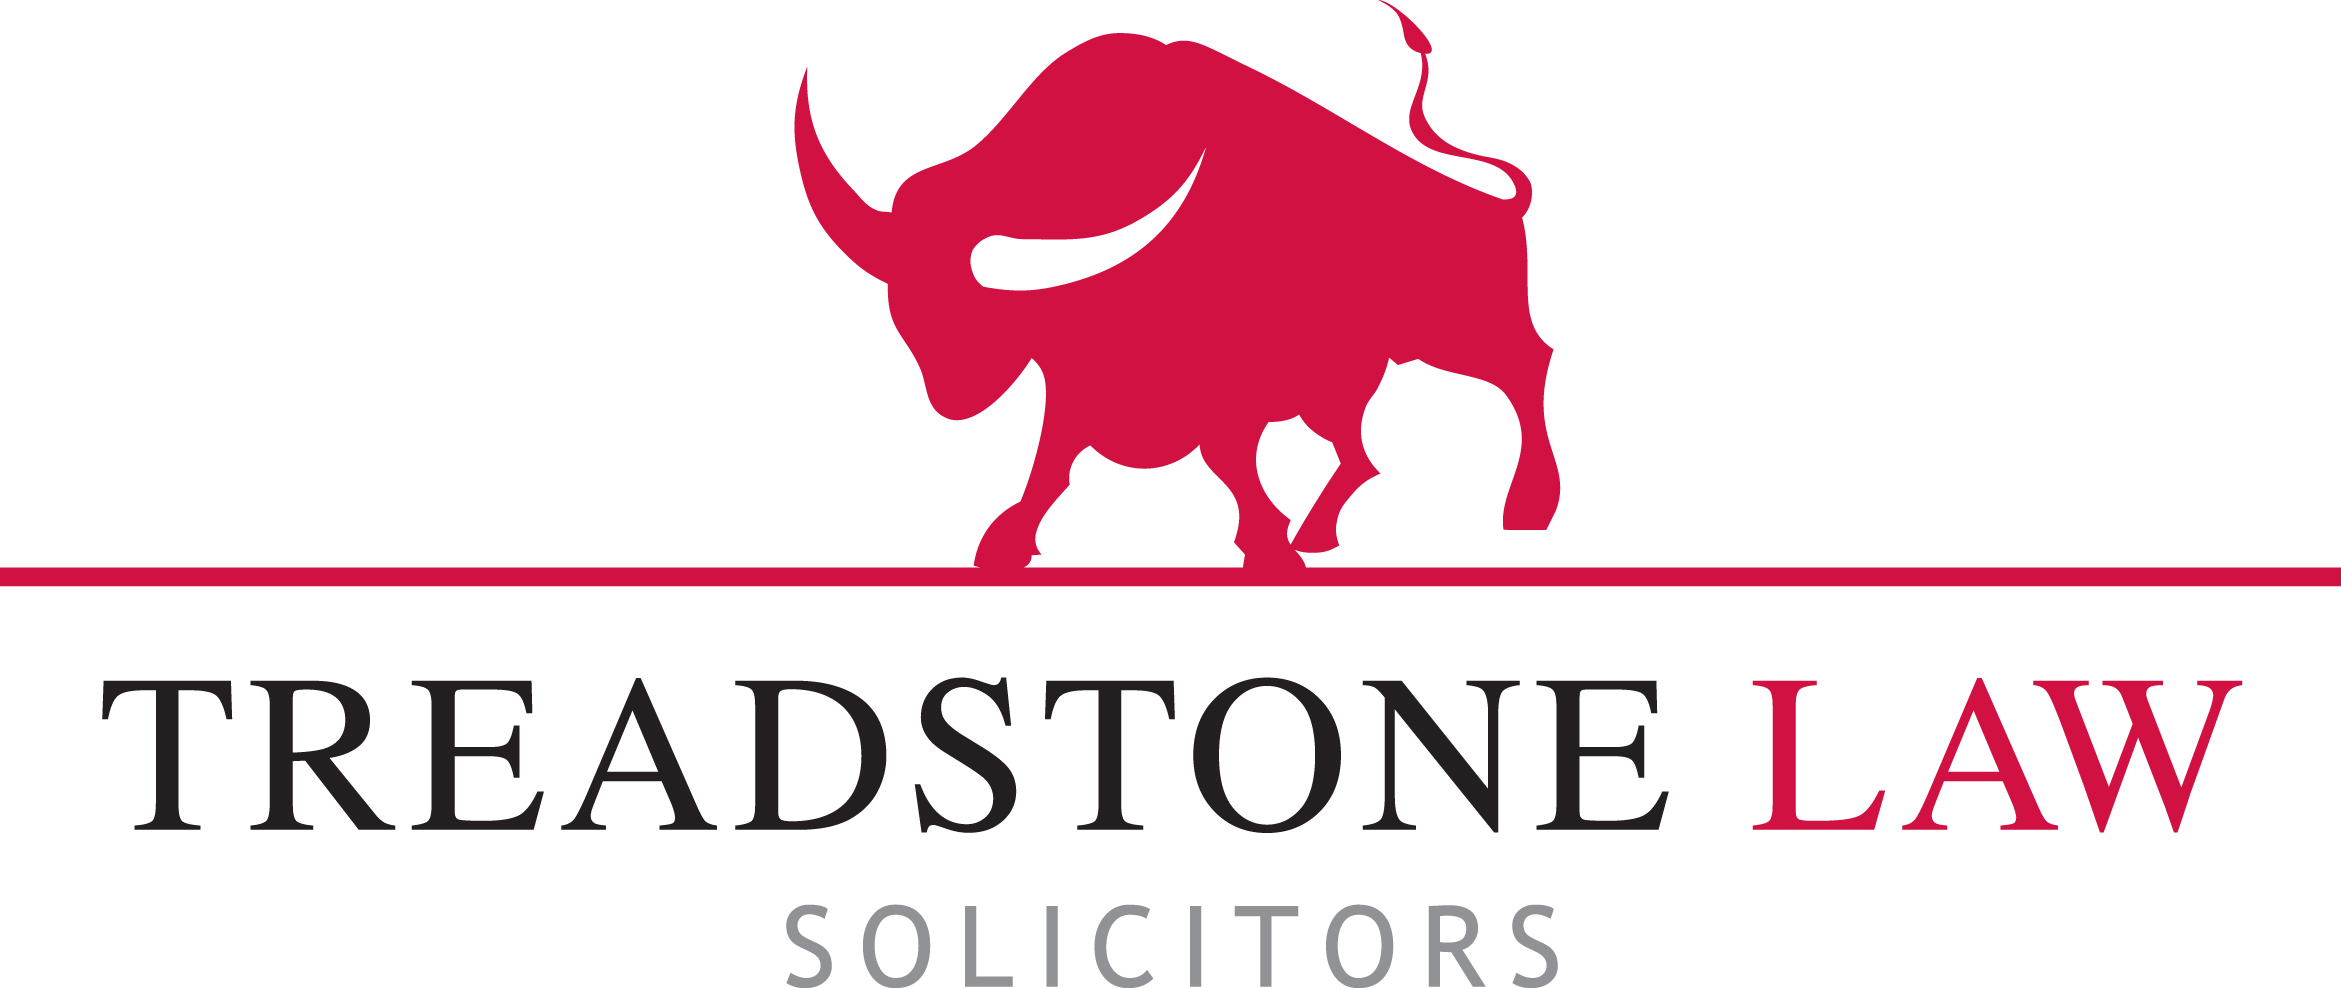 Logo of Treadstone Law